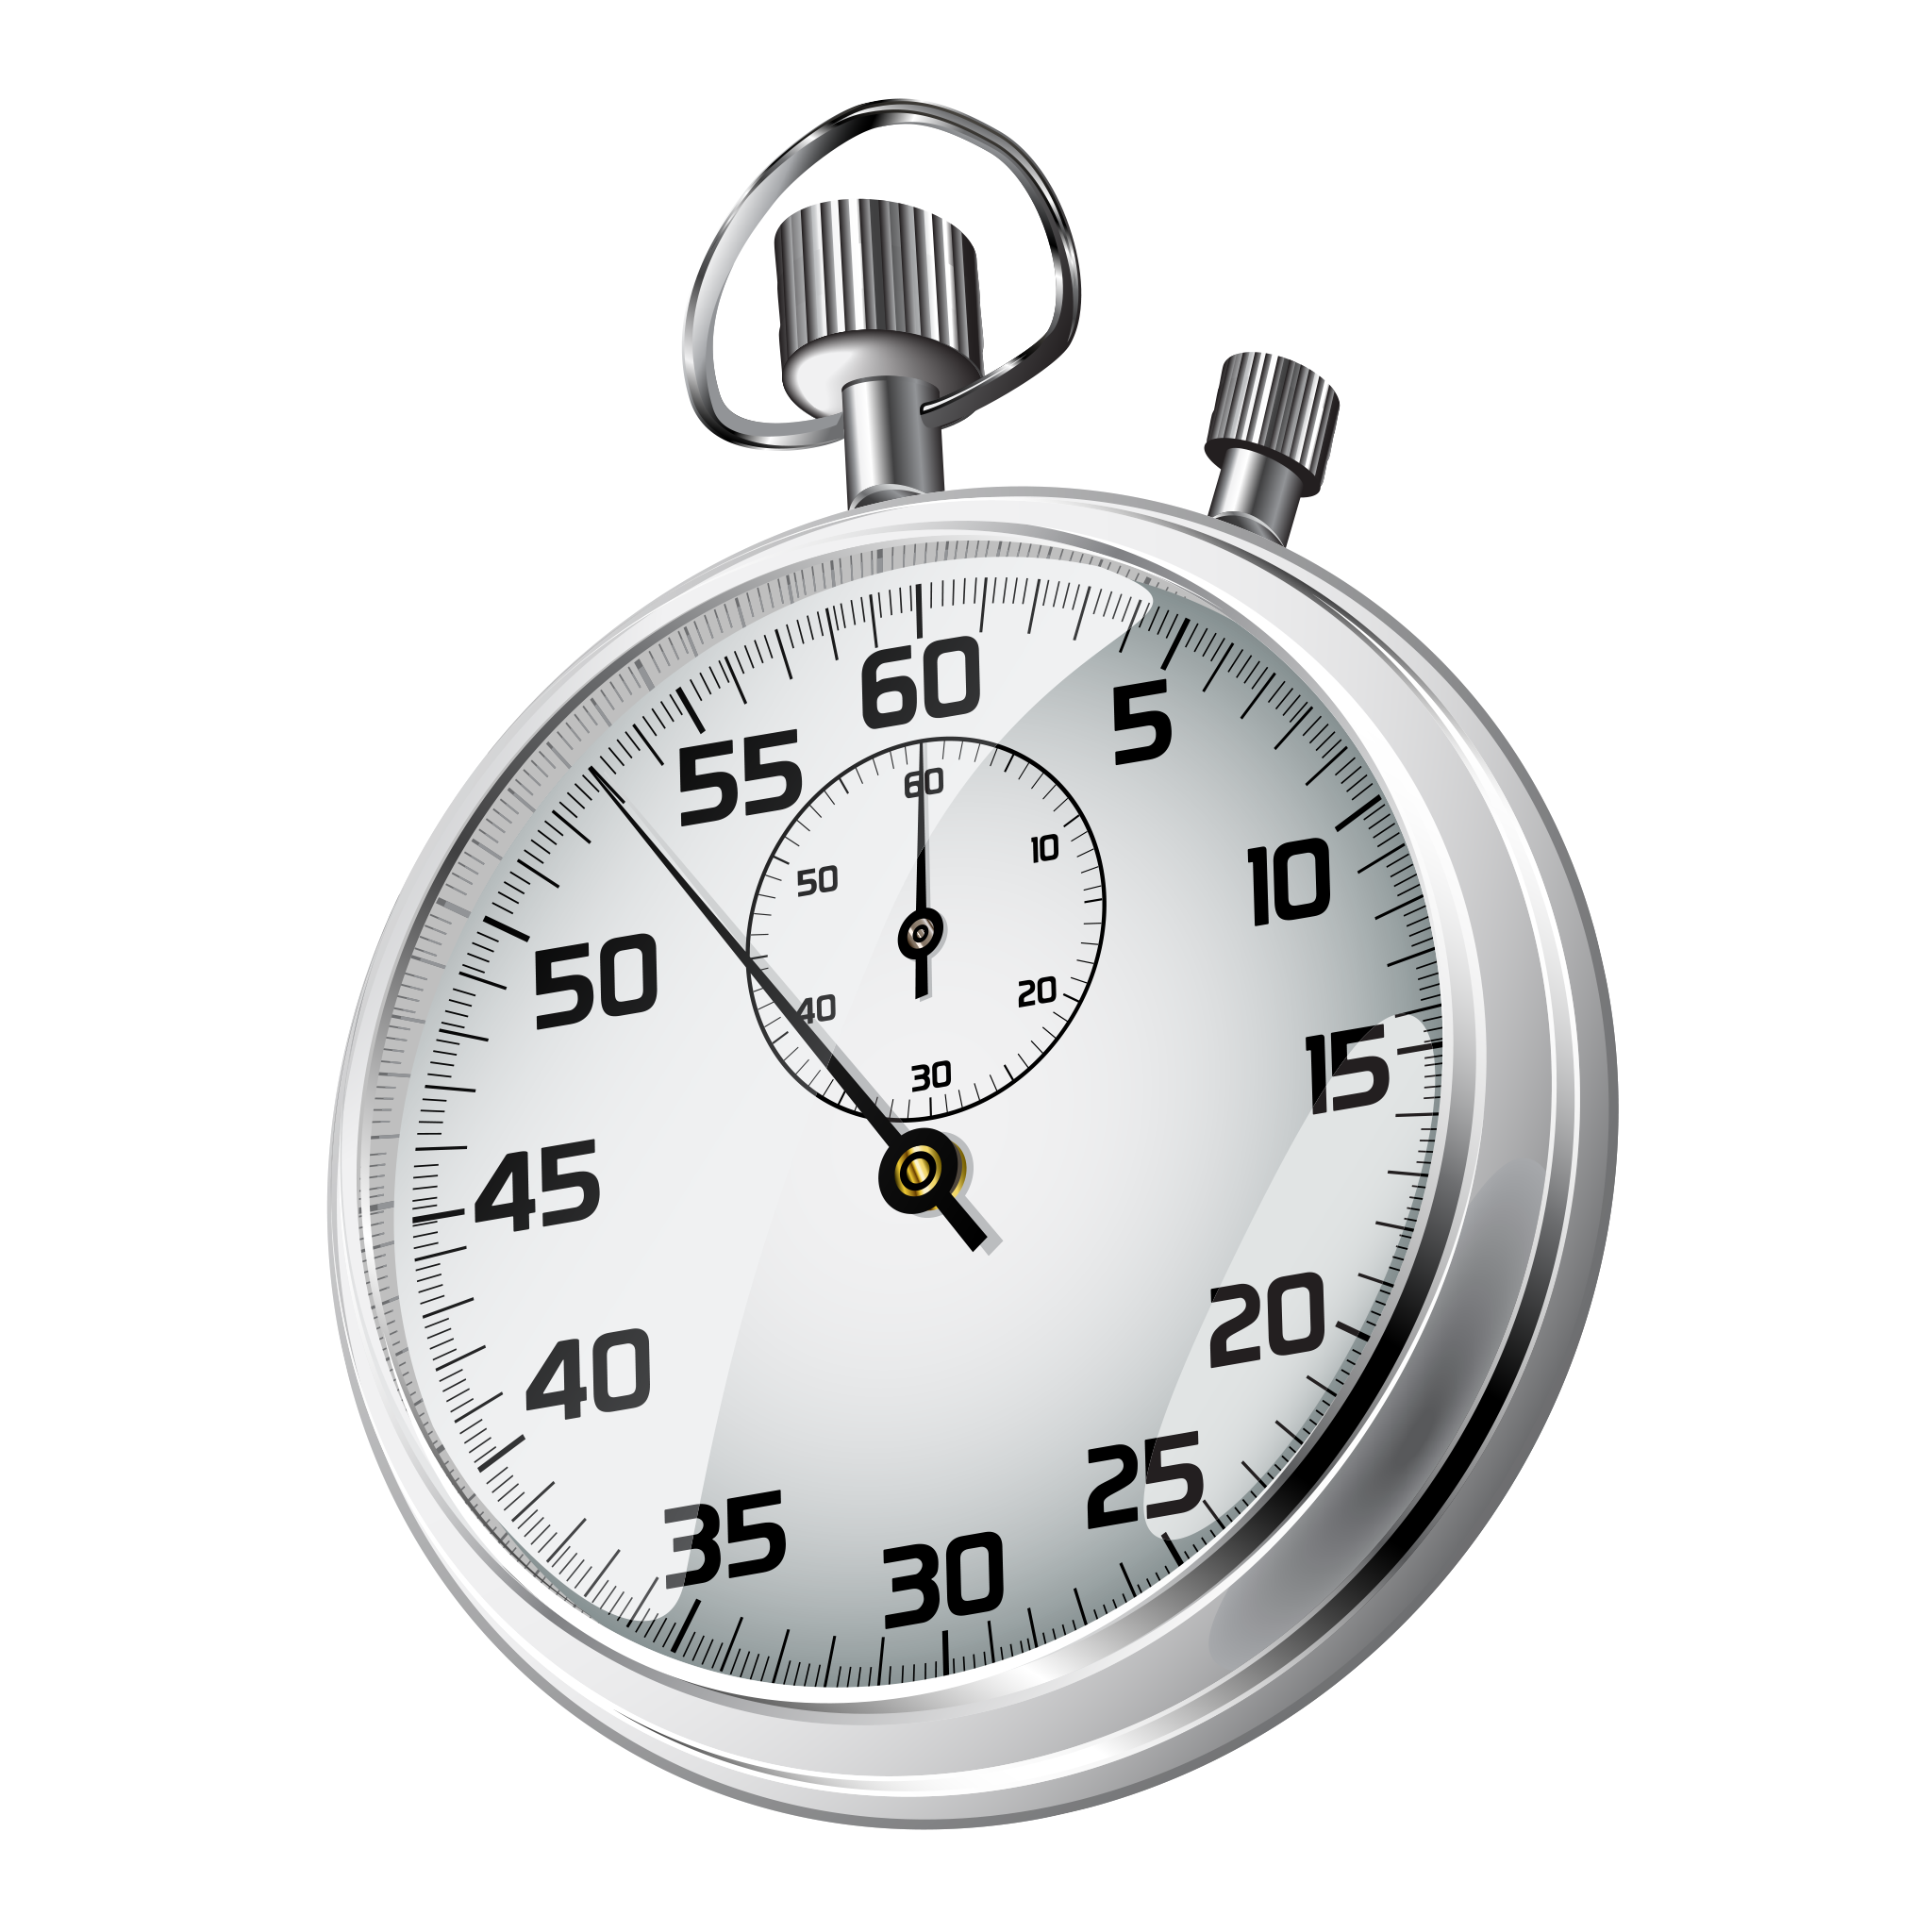 Transparent stopwatch black and white. Realistic timer on background